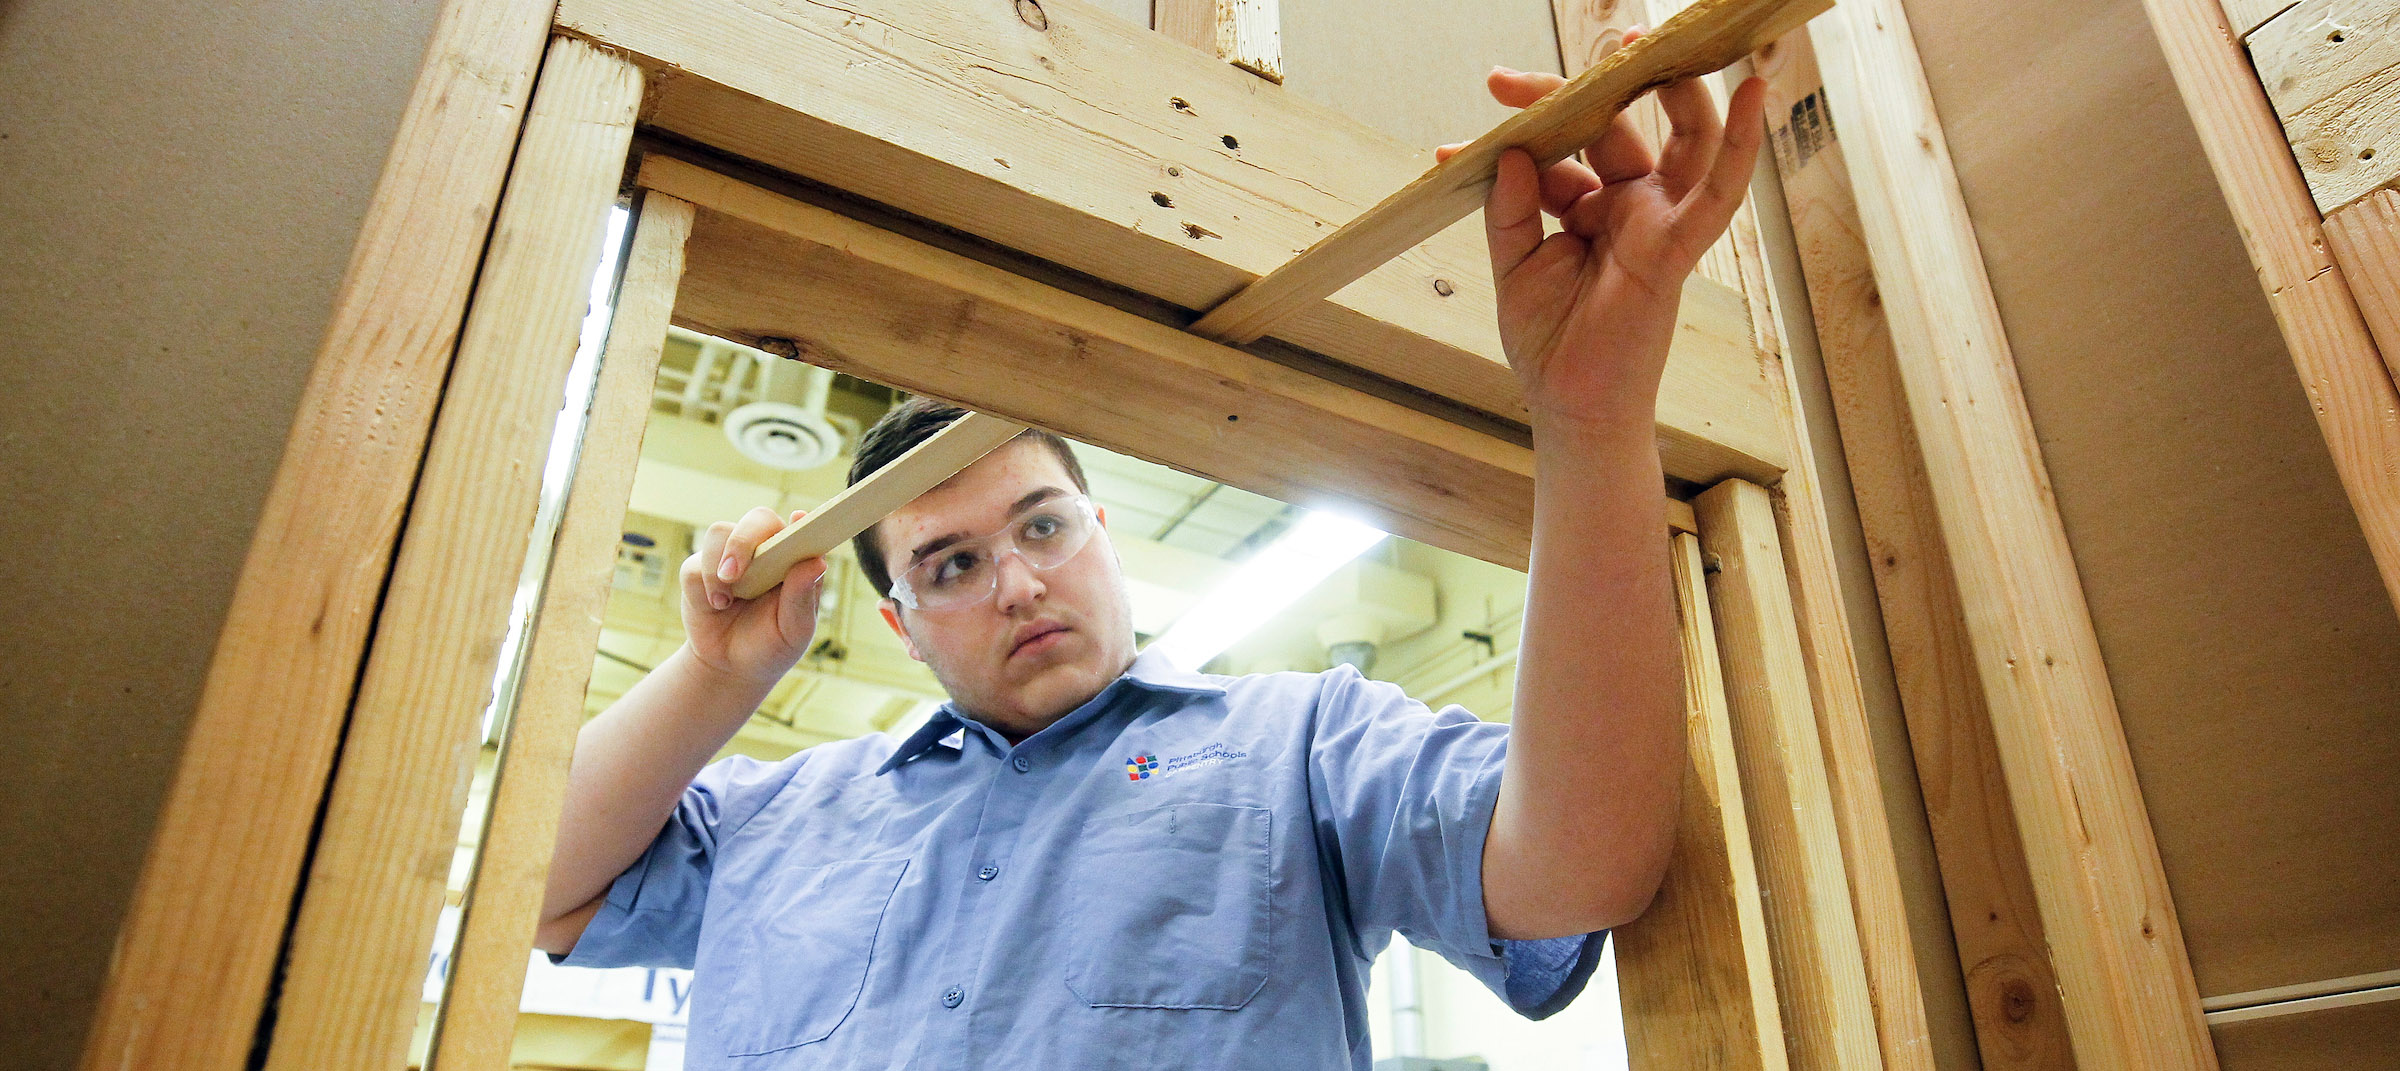 Student in classroom building window structure